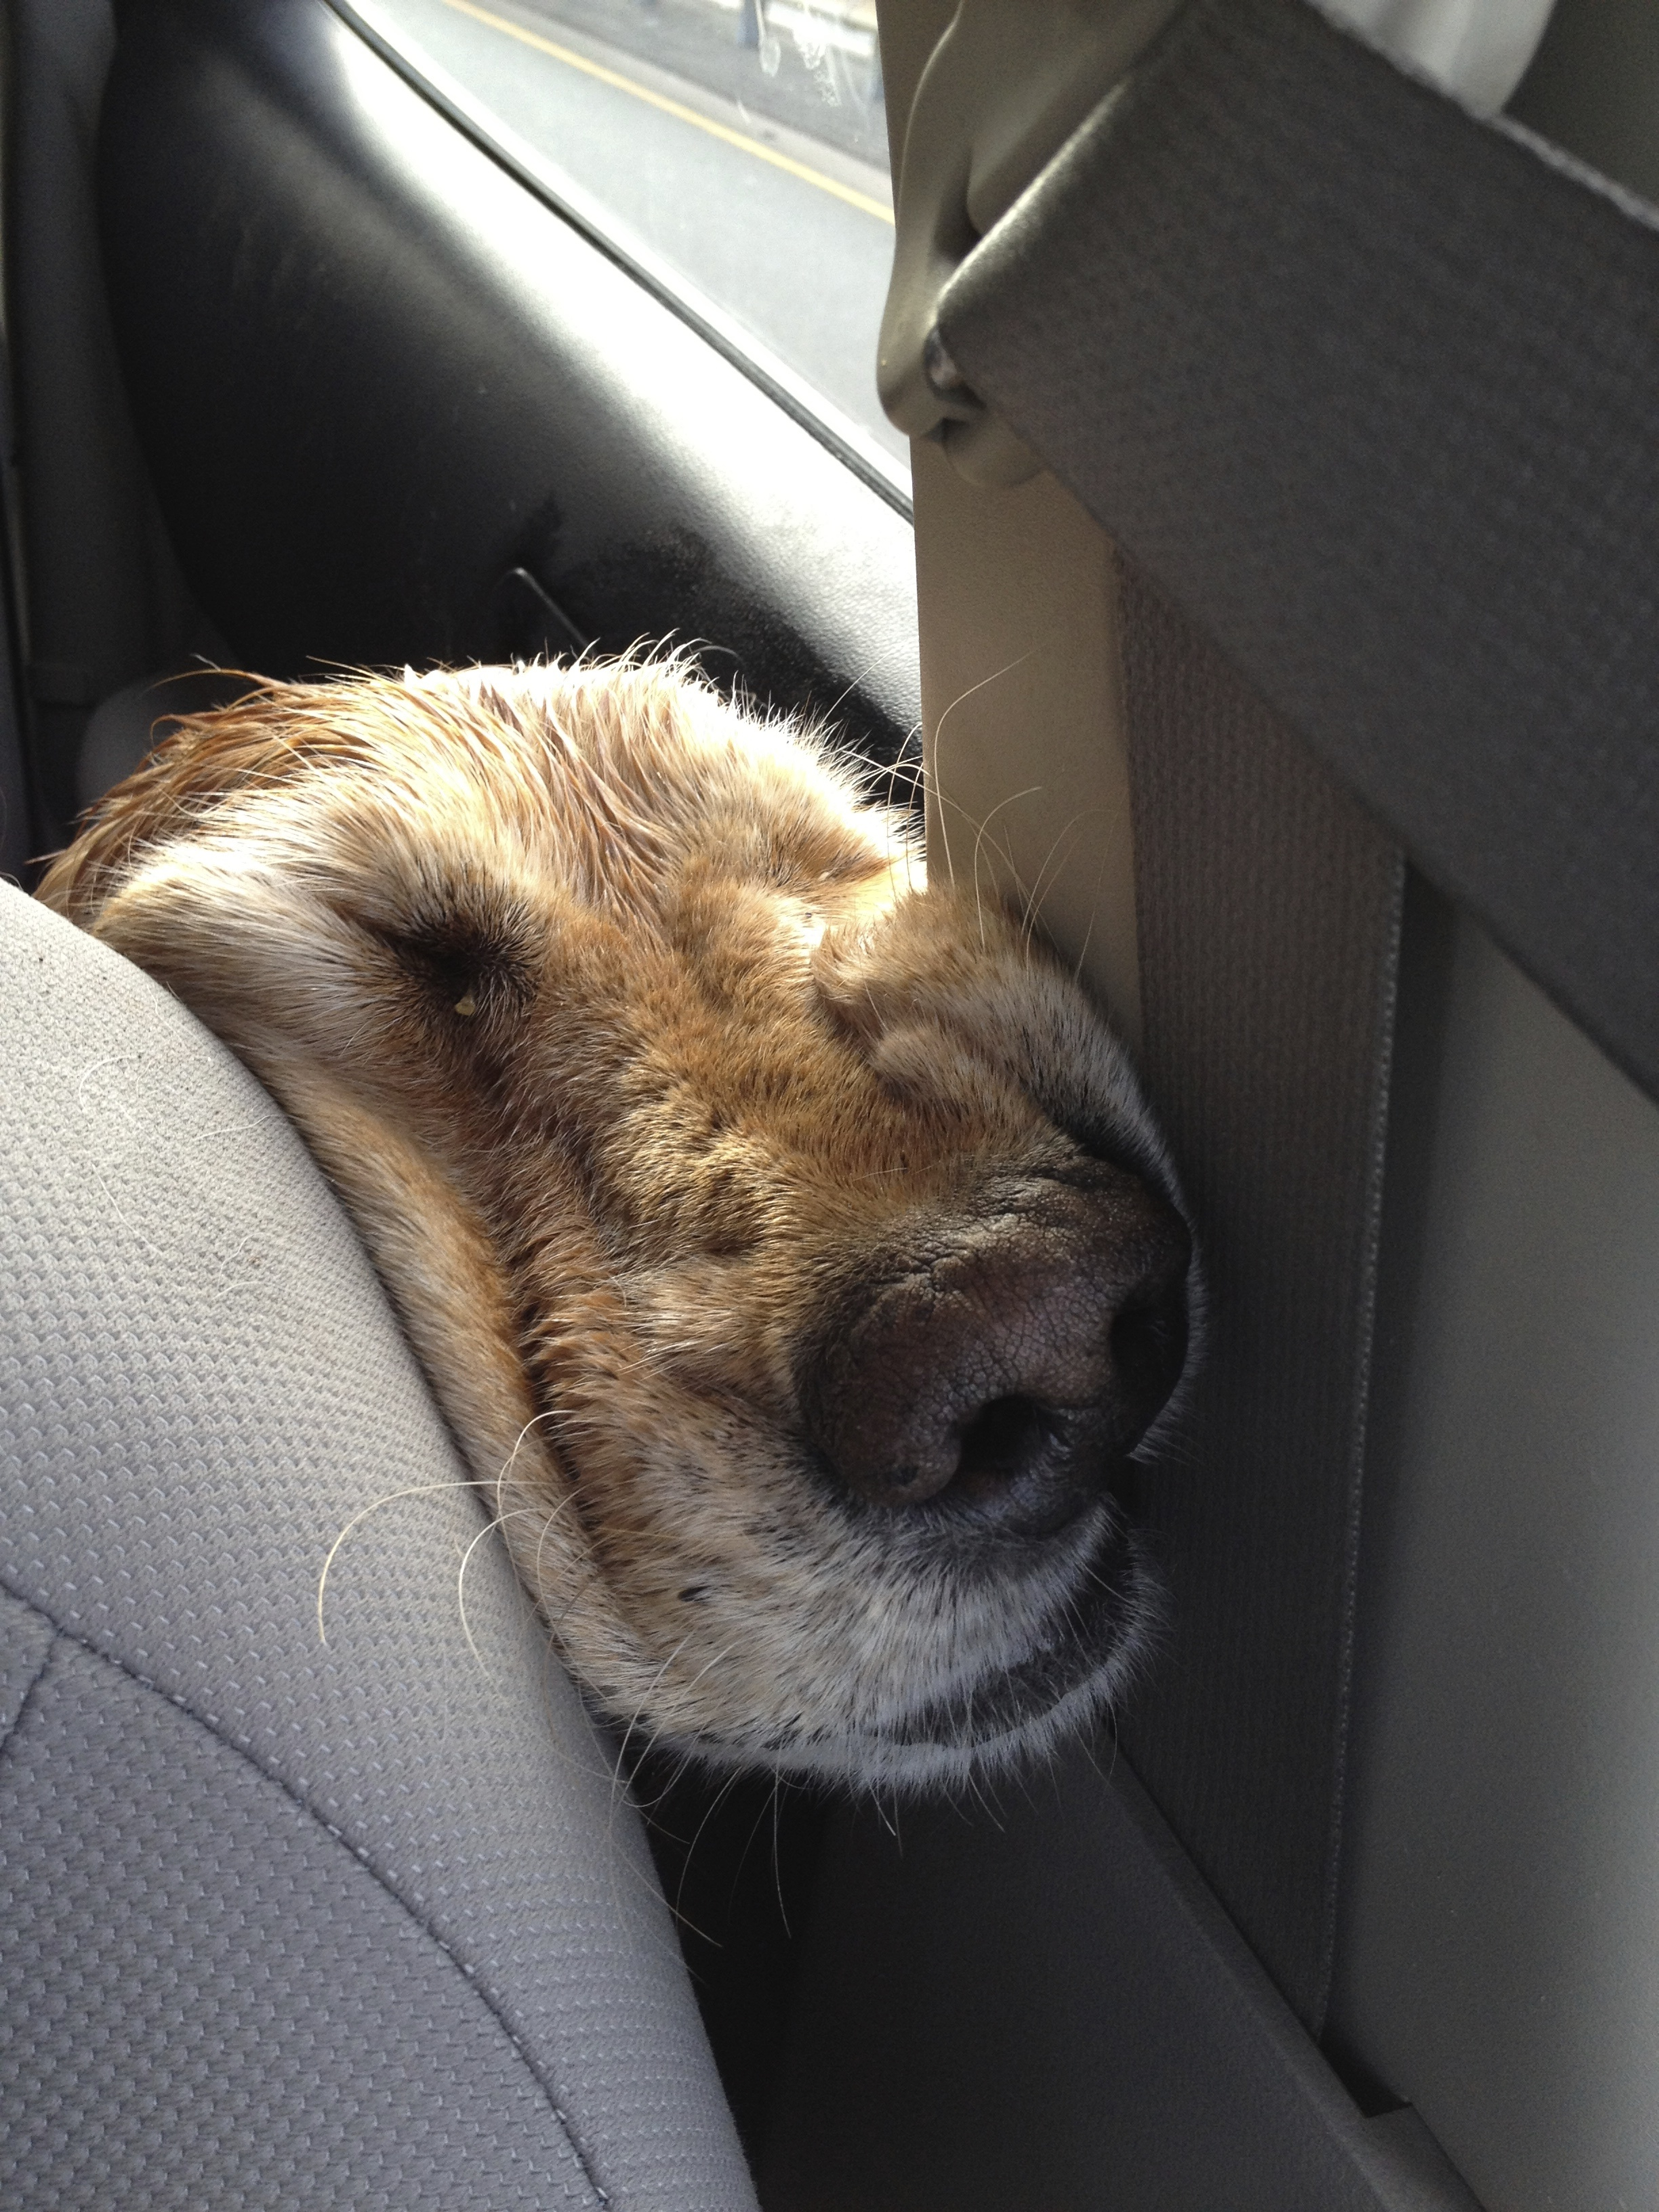 Tired on the ride home from a nice hike